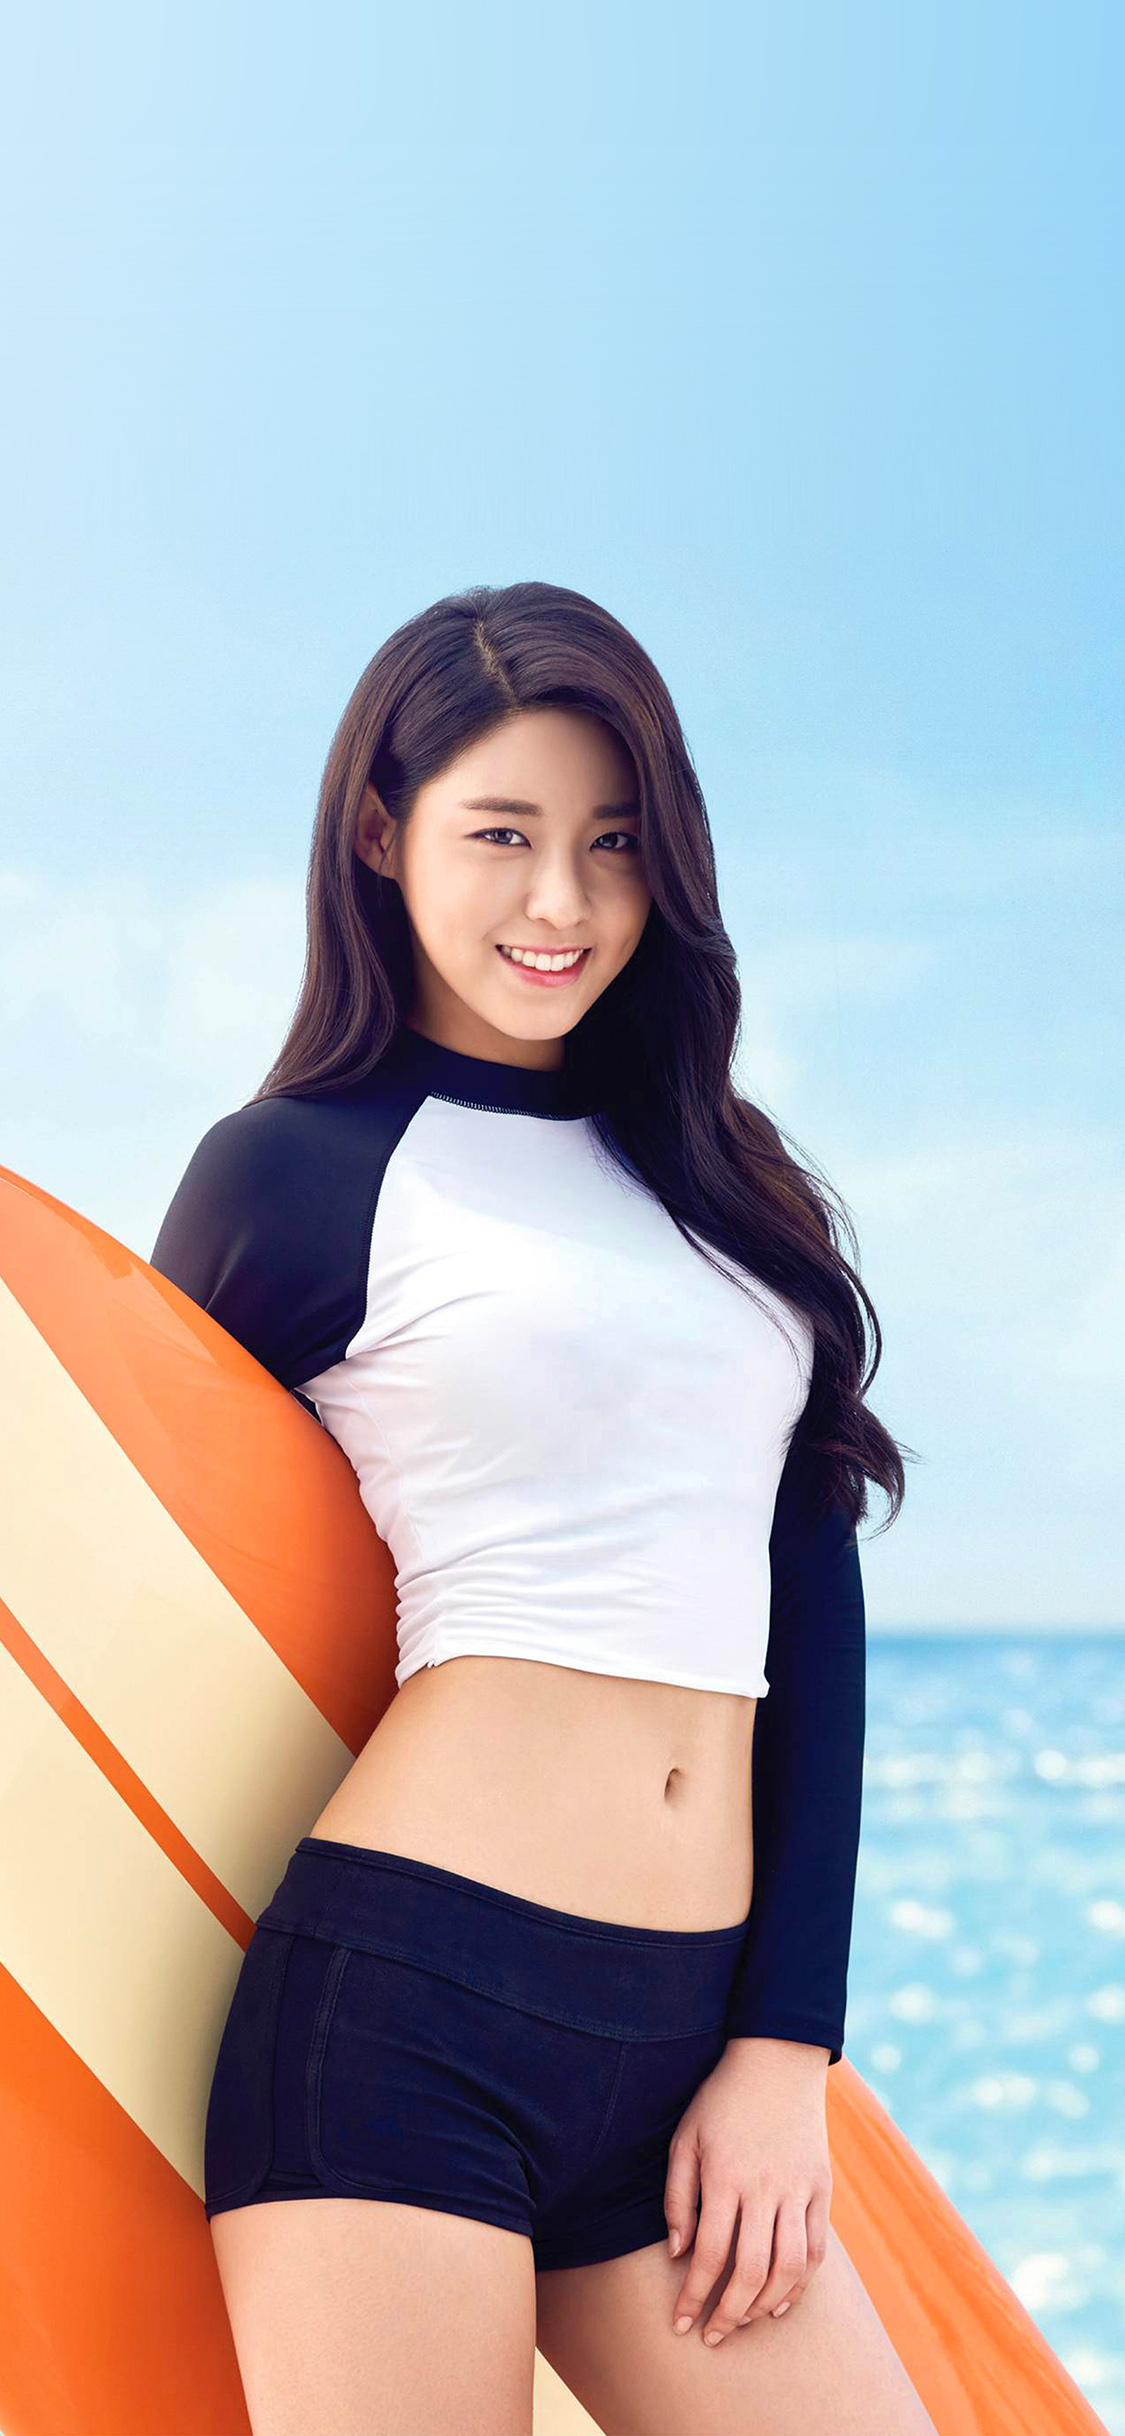 Car Wallpaper For Android Hh34 Seolhyun Aoa Kpop Sea Sumner Cute Swimsuit Papers Co